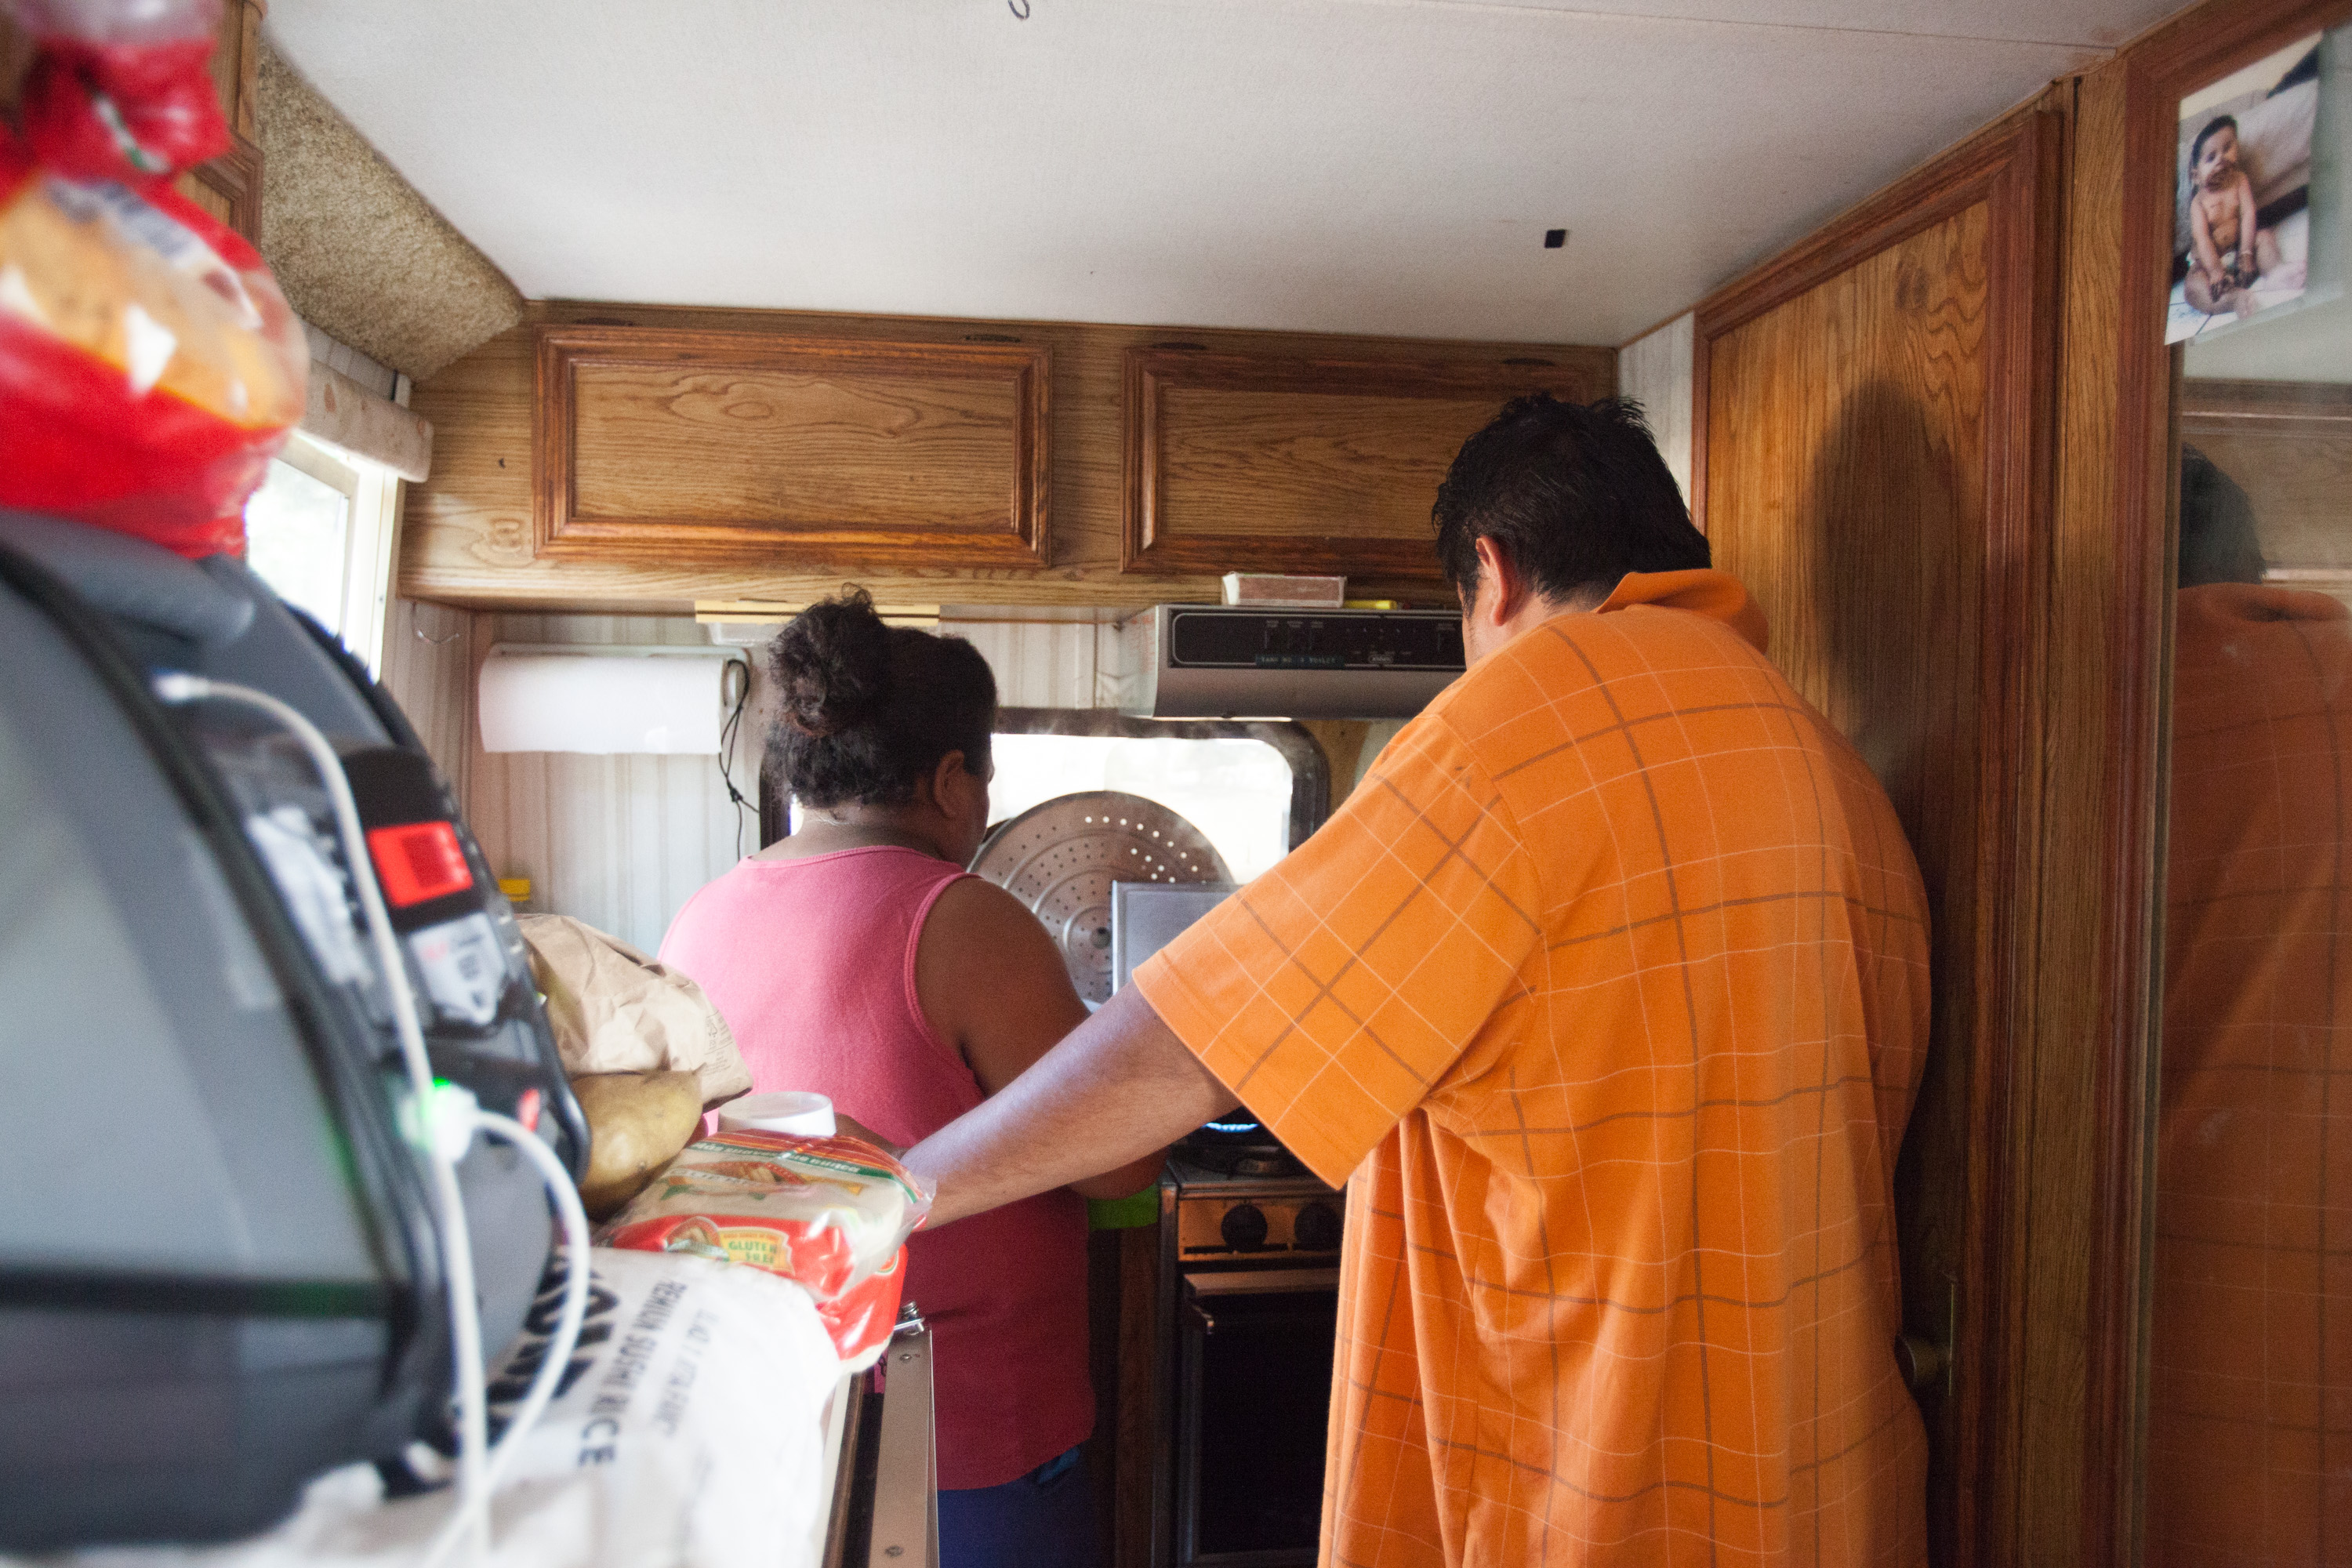 Noemi and her husband stand shoulder to shoulder in the cramped kitchen area of the RV as they prepare a meal, on August 30, 2017. Photo by Ana Sofia Amieva-Wang